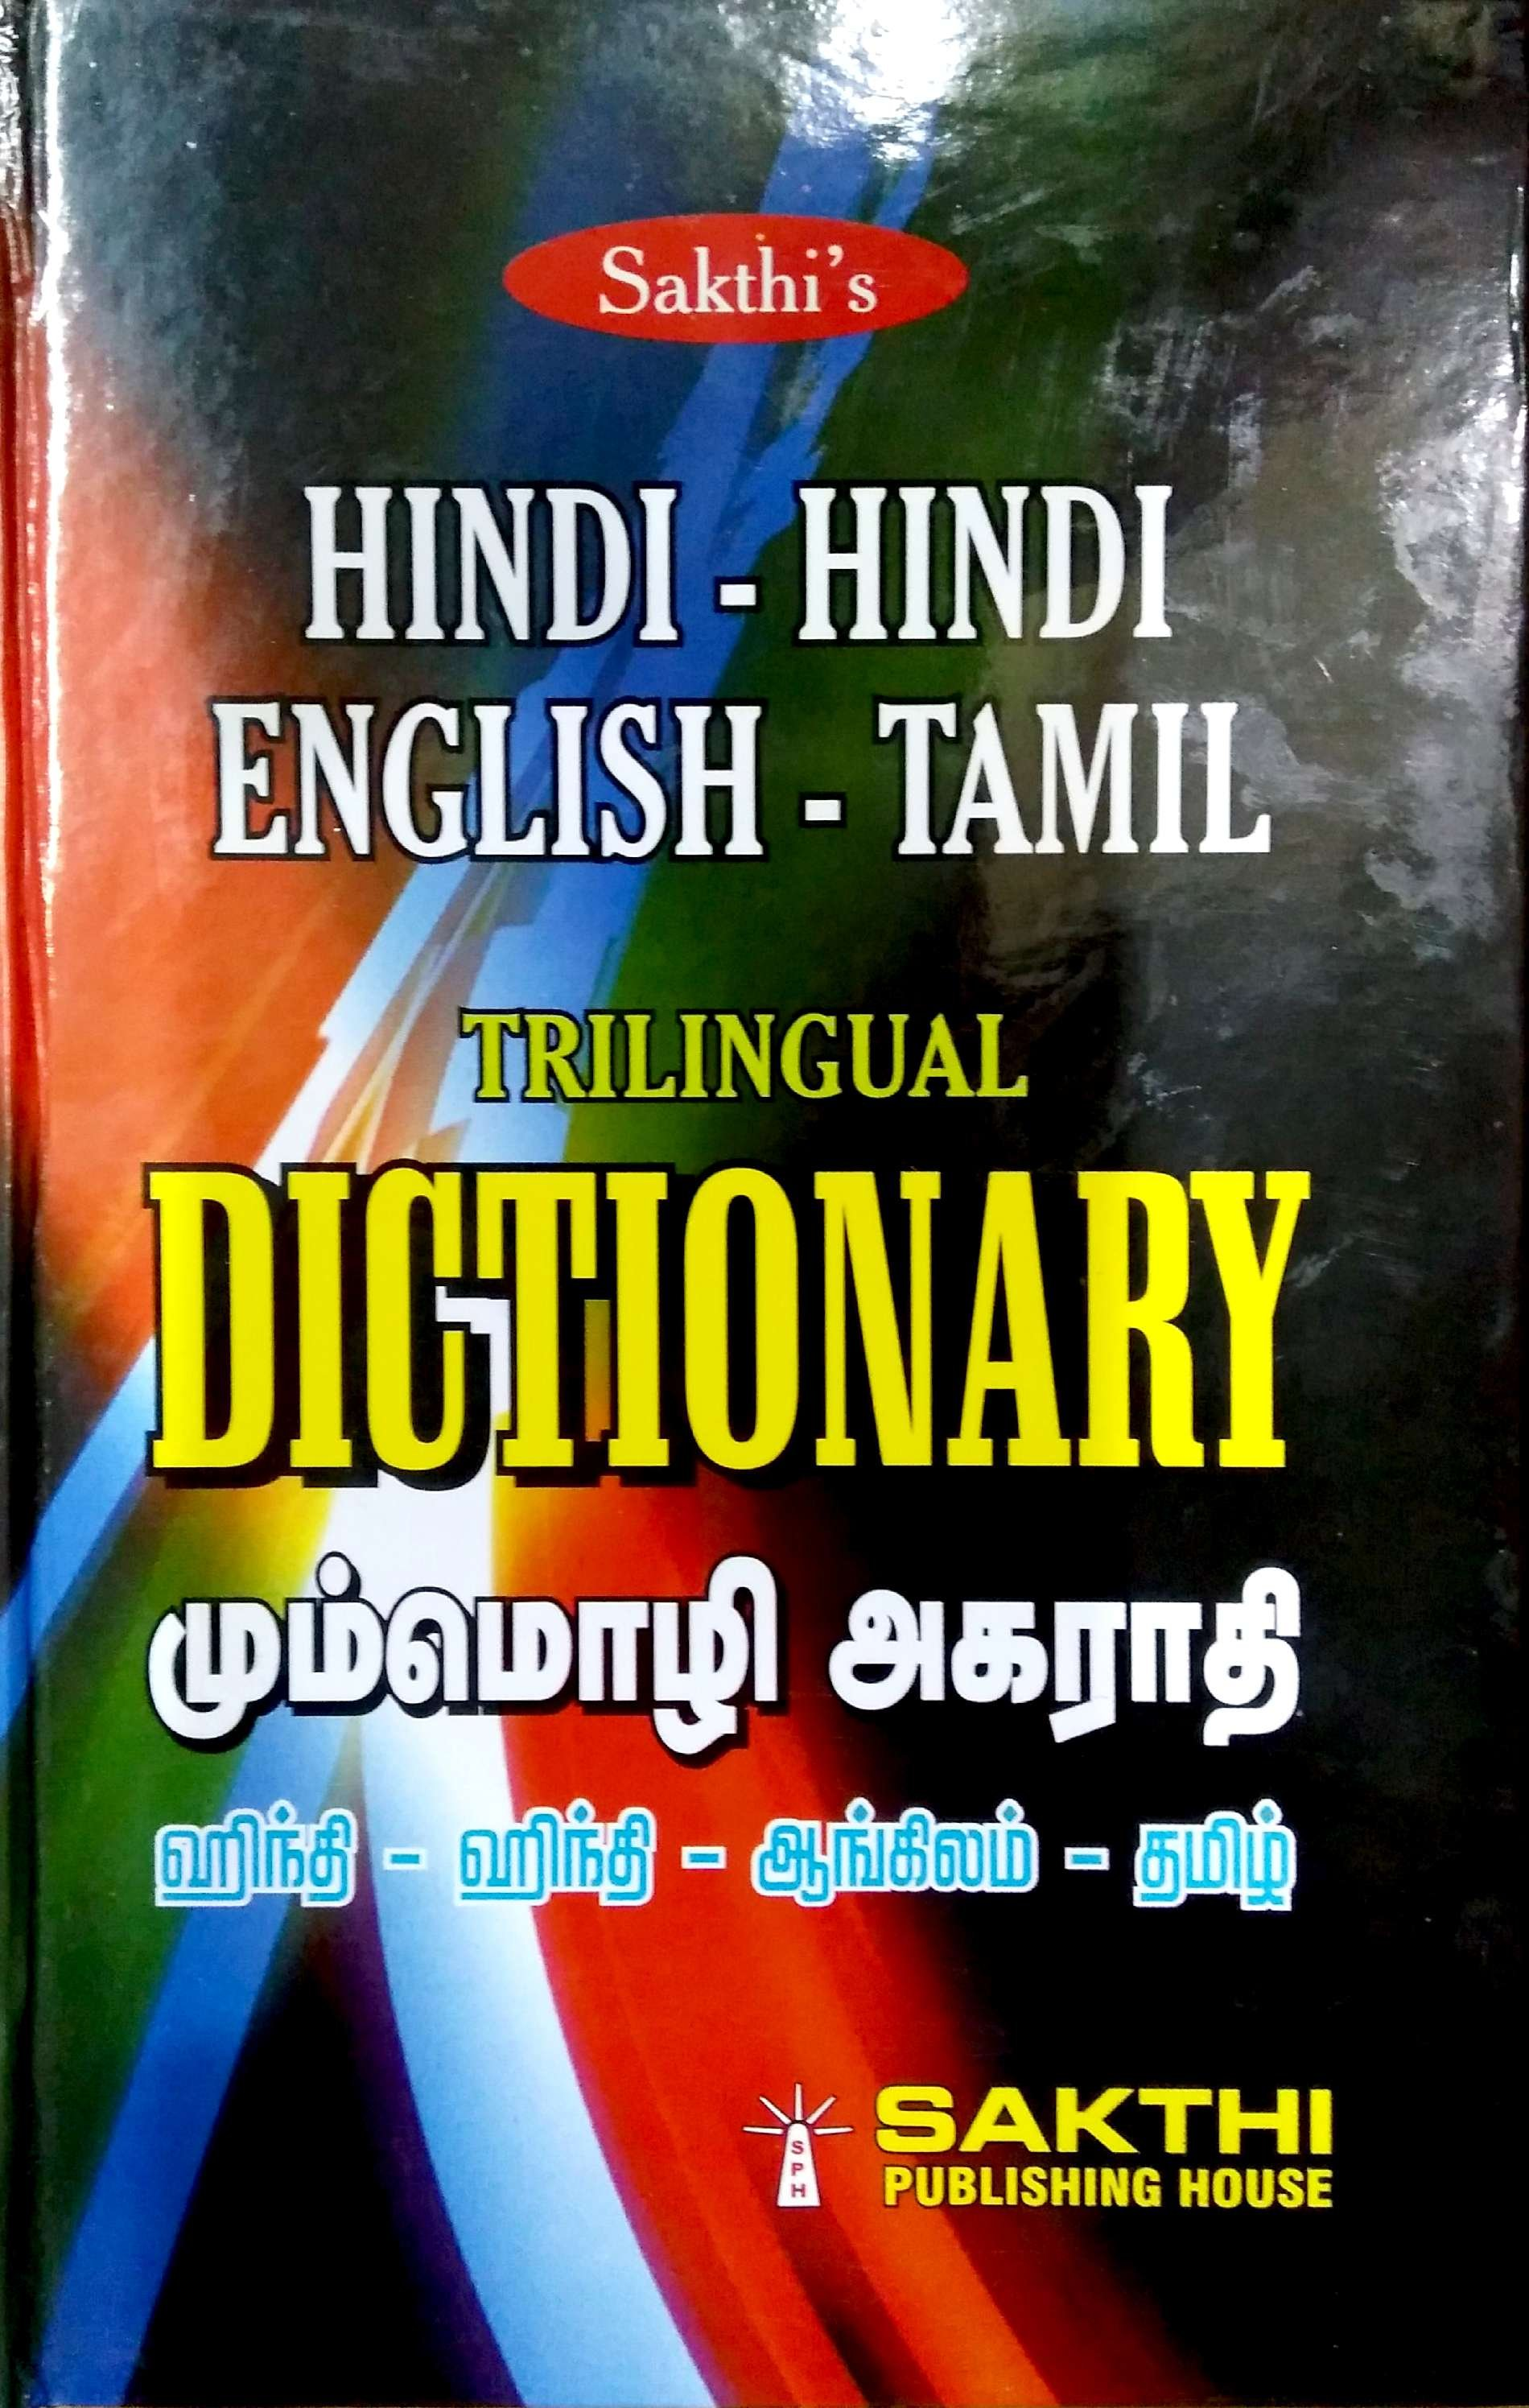 Hindi Dictionary Pdf